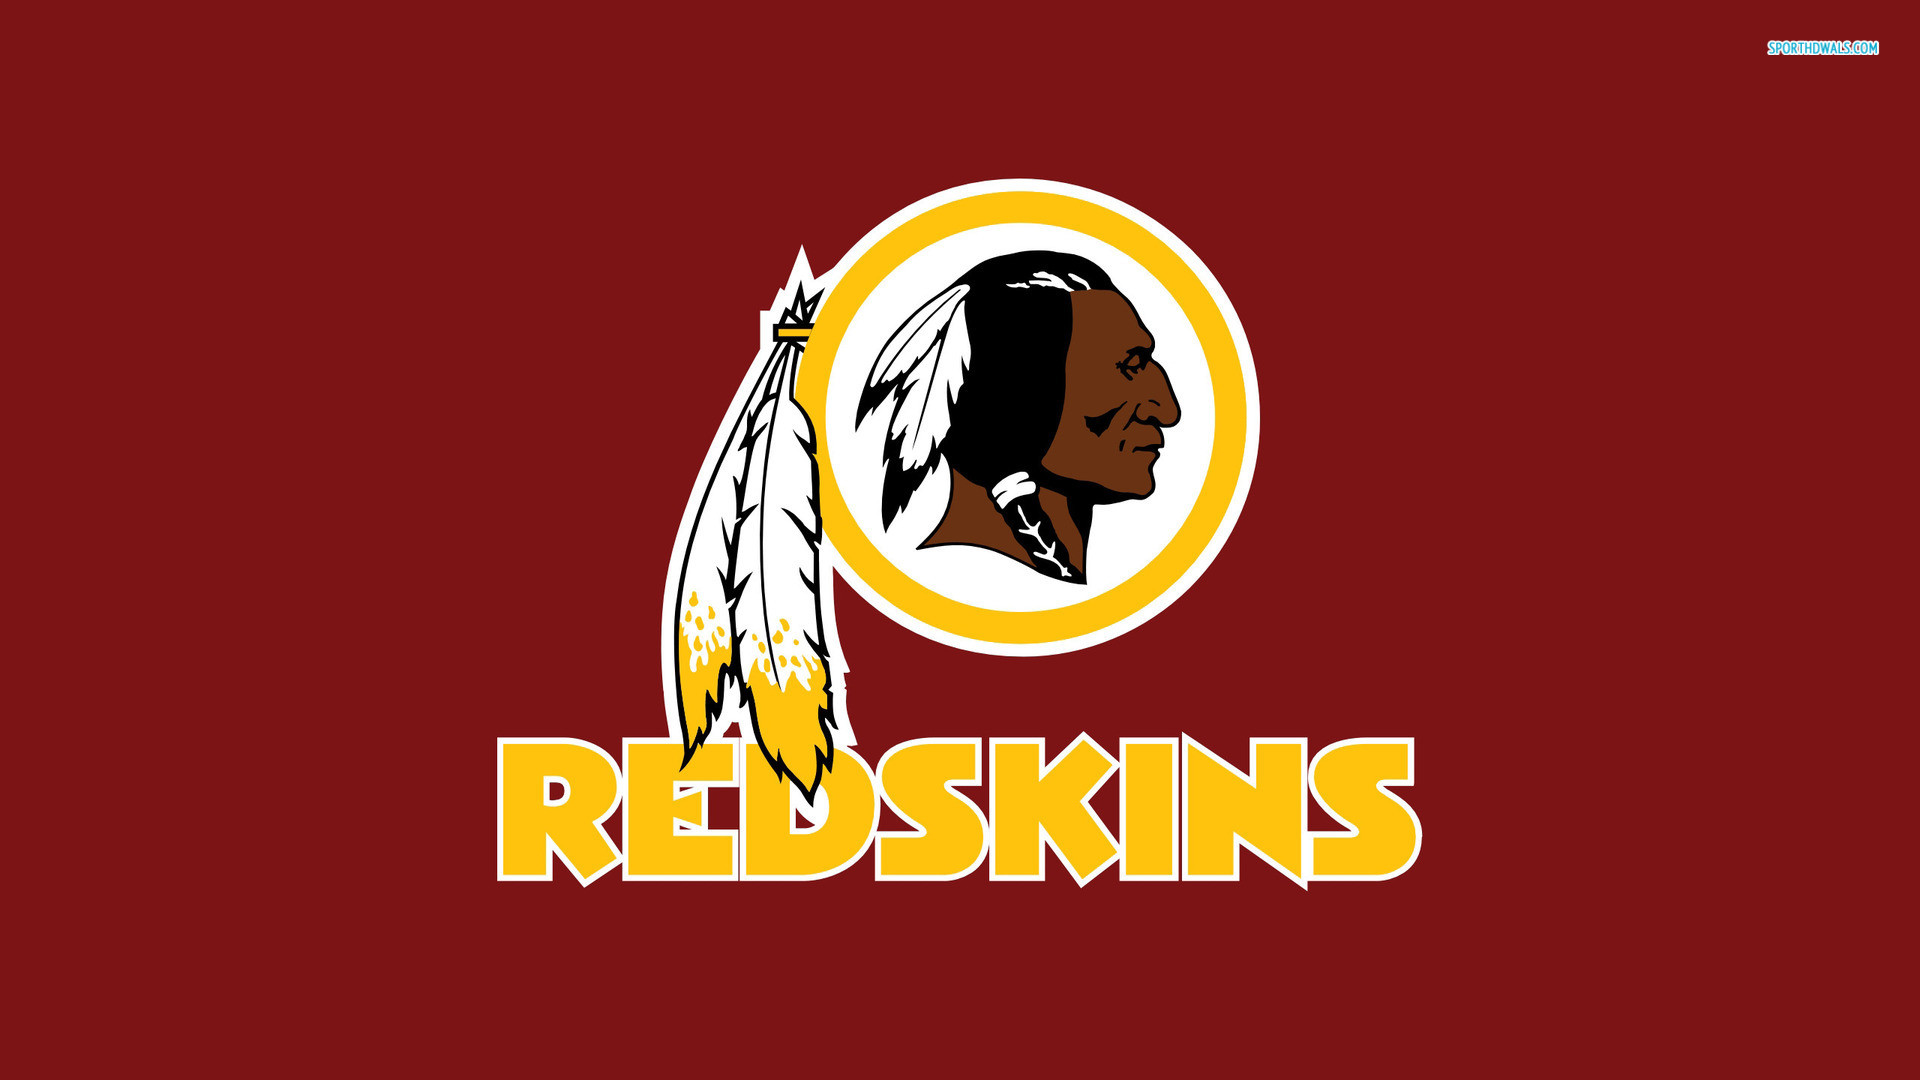 1920x1080 Washington Redskins wallpaper | Washington Redskins wallpapers